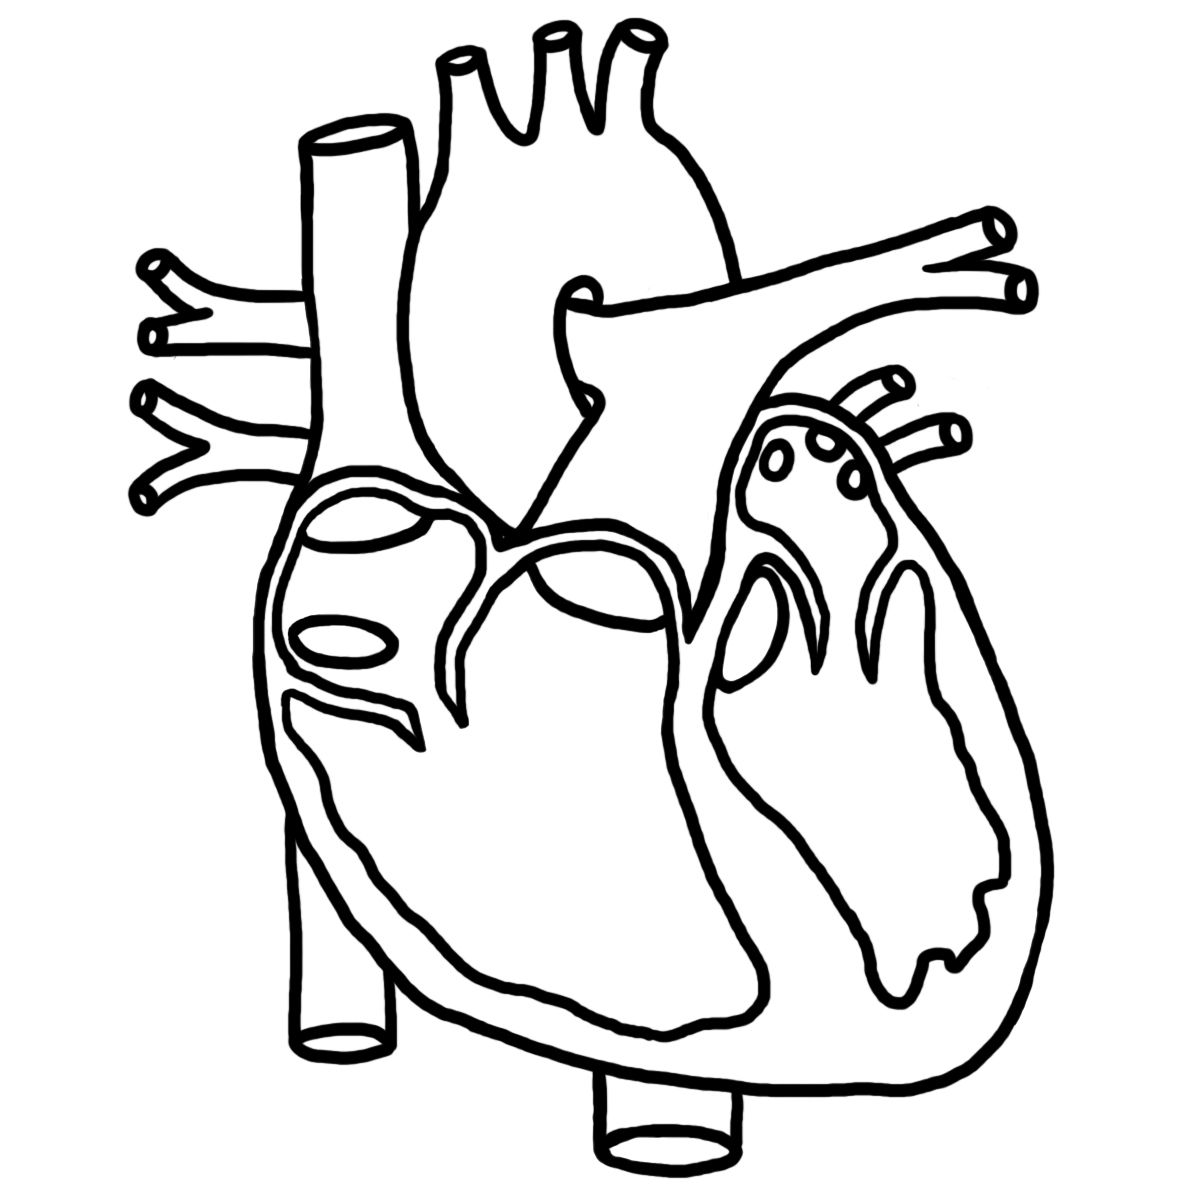 Name All Parts Of The Heart